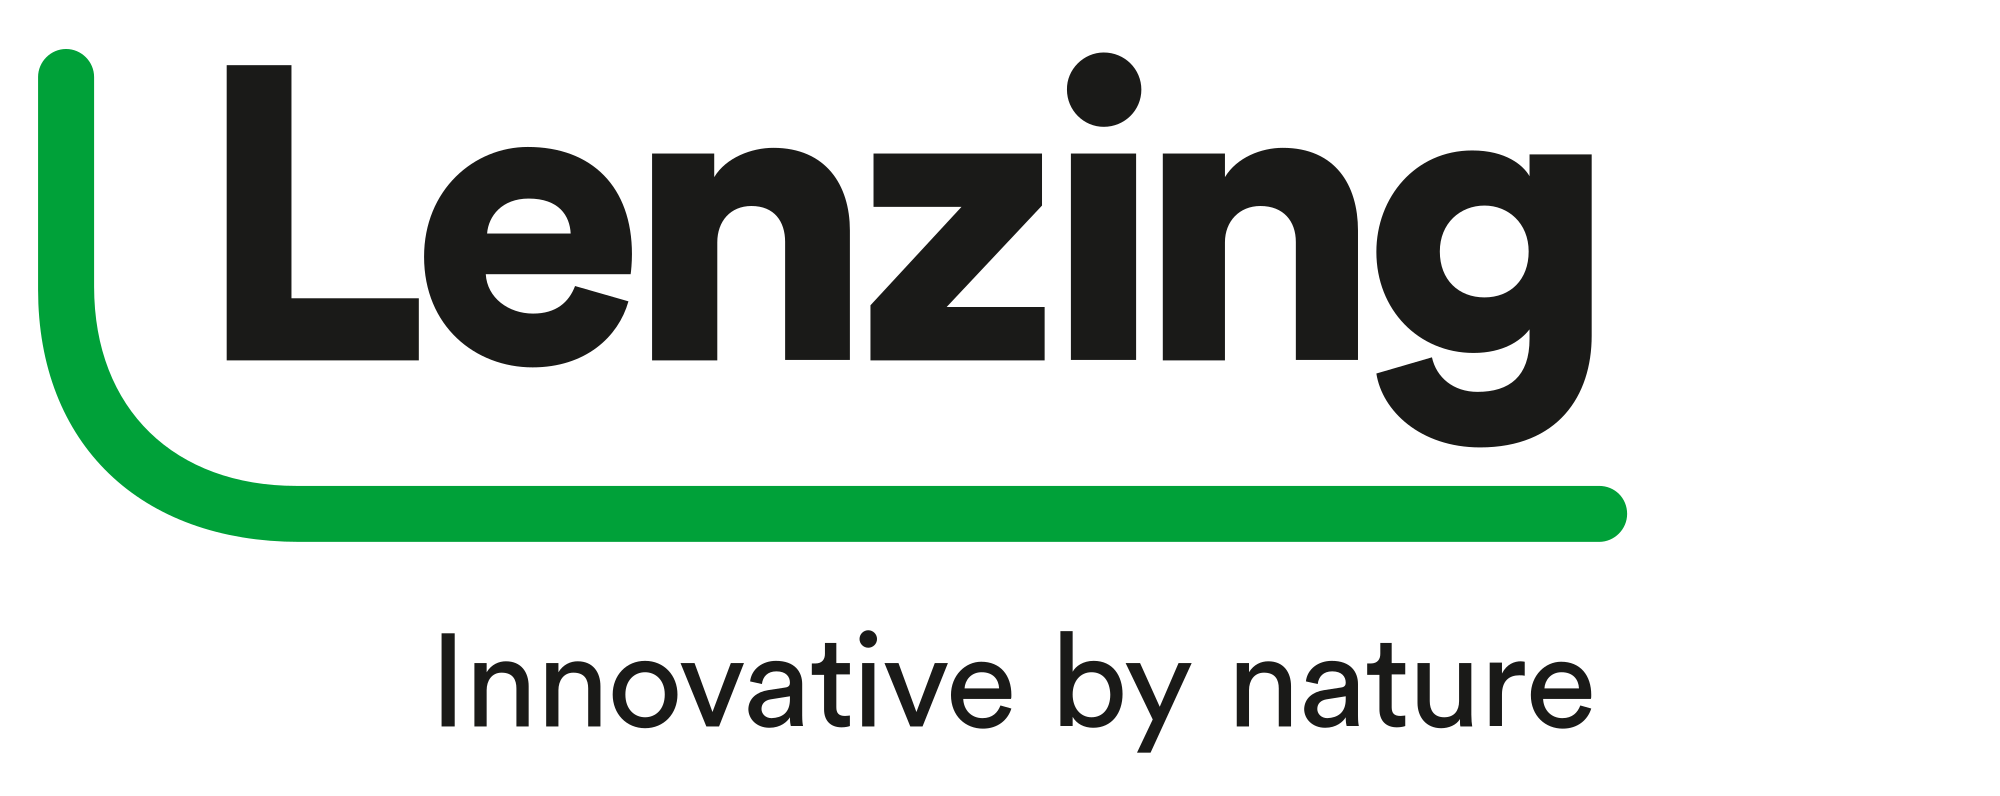 Positioning Referenz - Lenzing mit Mag. Lorenz Wied, MBA